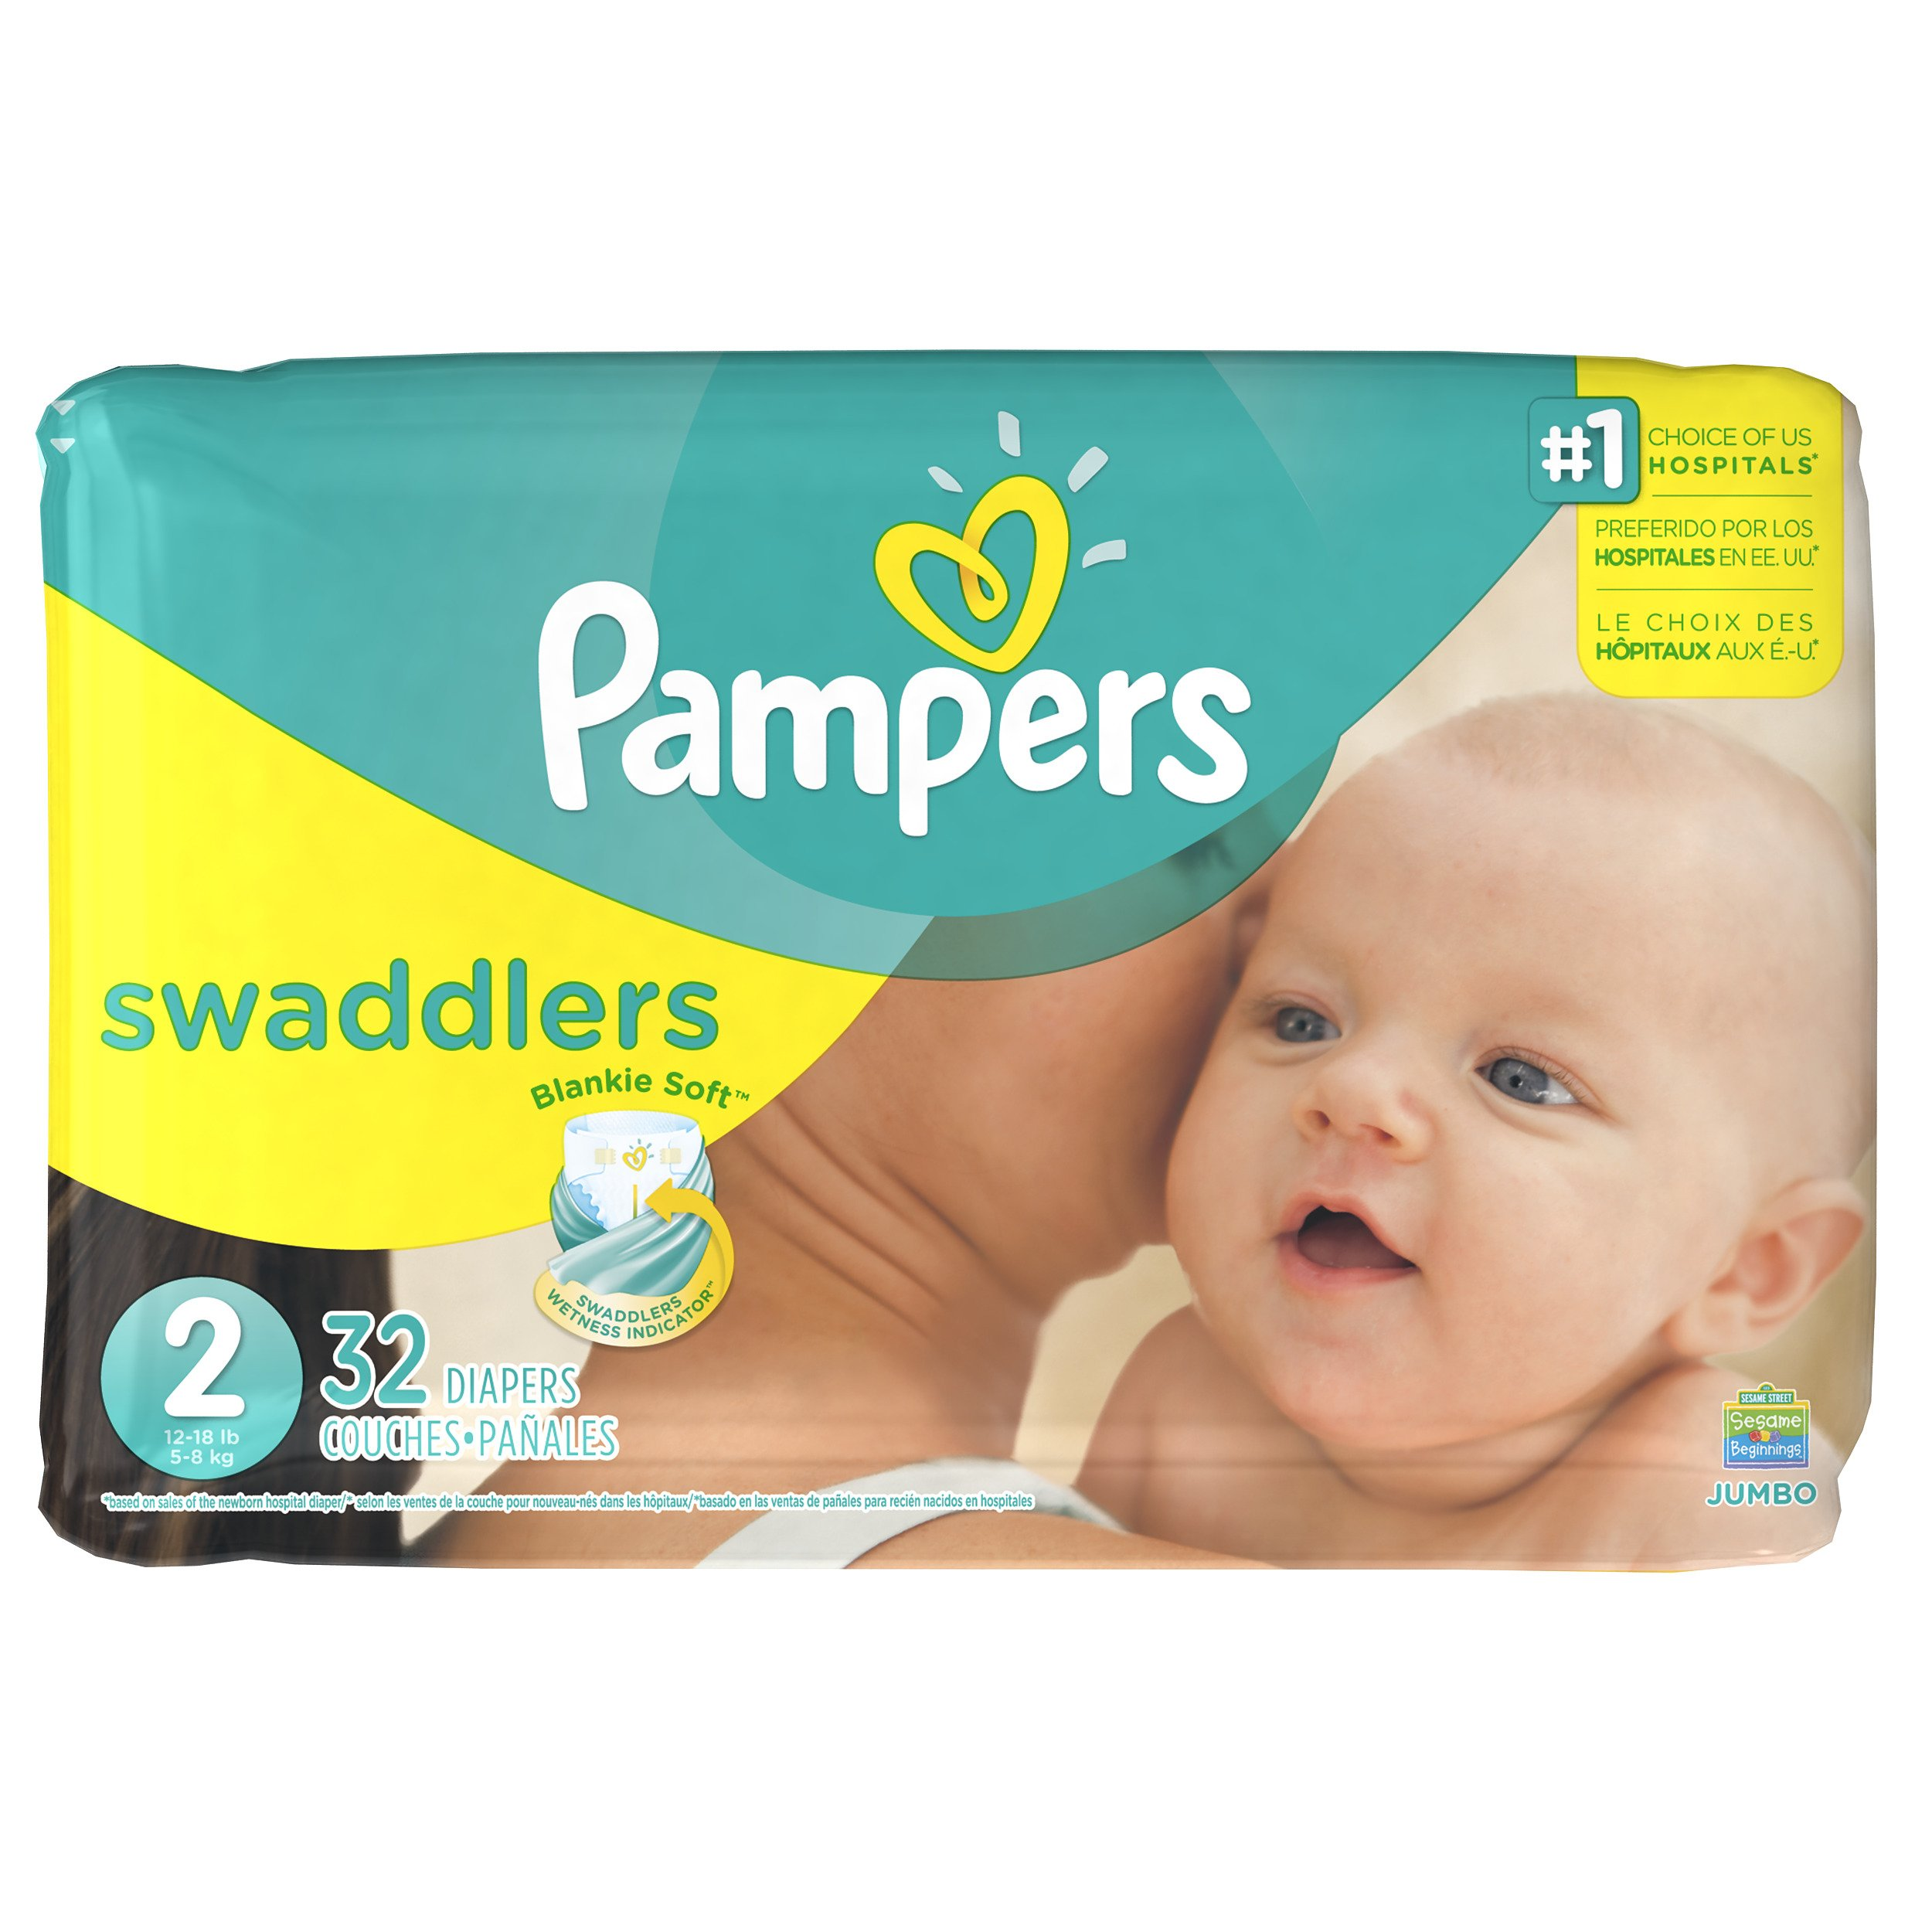 Galleon - Pampers Swaddlers Disposable Diapers Size 2, 32 ...